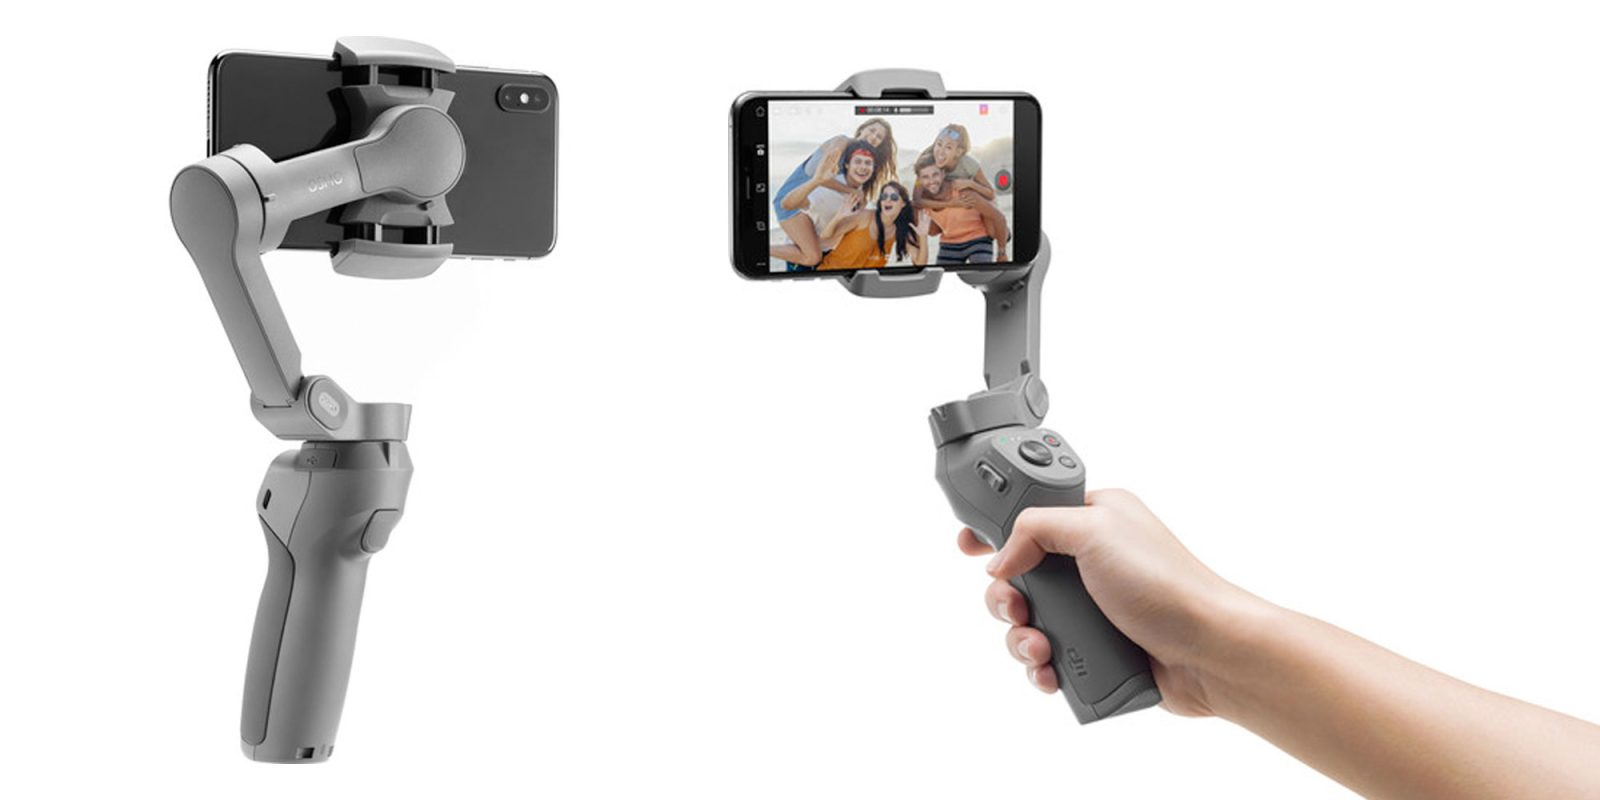 Get the DJI Osmo Mobile 3 + over $70 in extras for $109 shipped